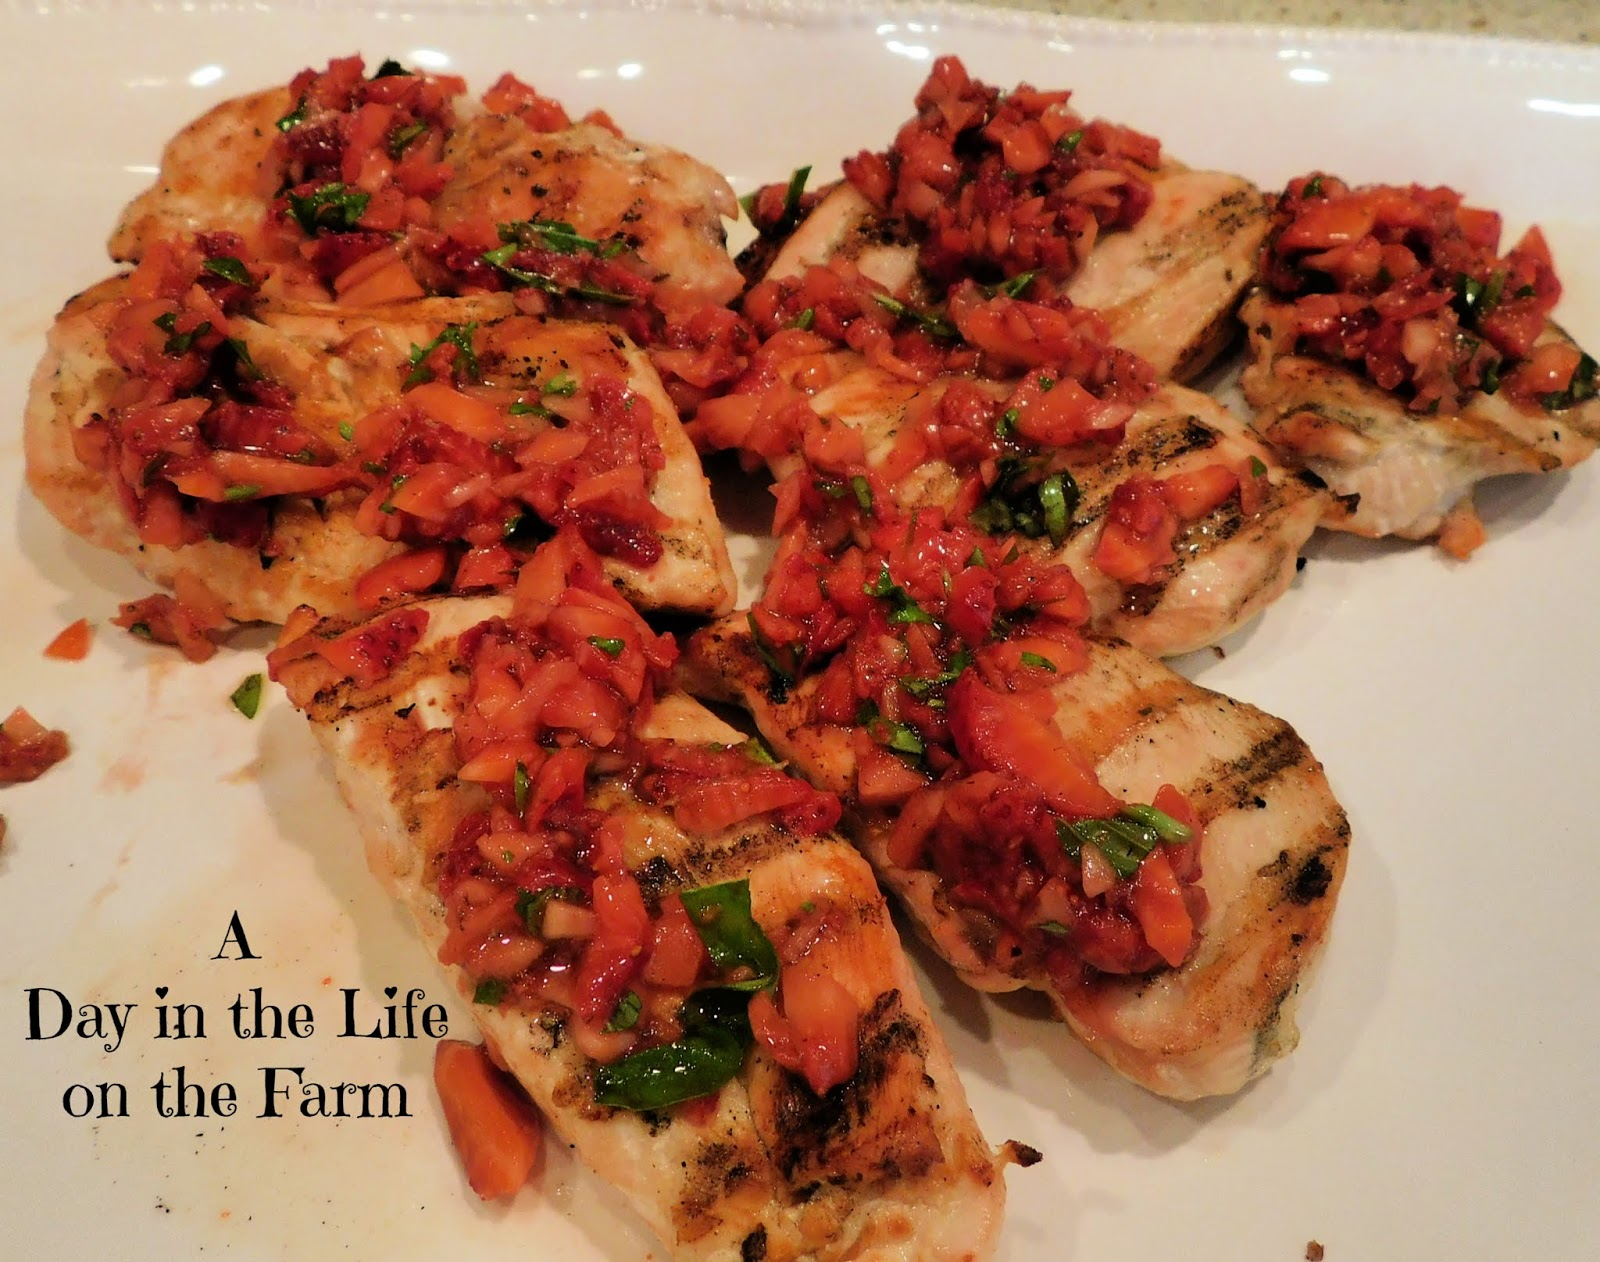 Grilled Chicken Breast with Strawberry Basil Salsa